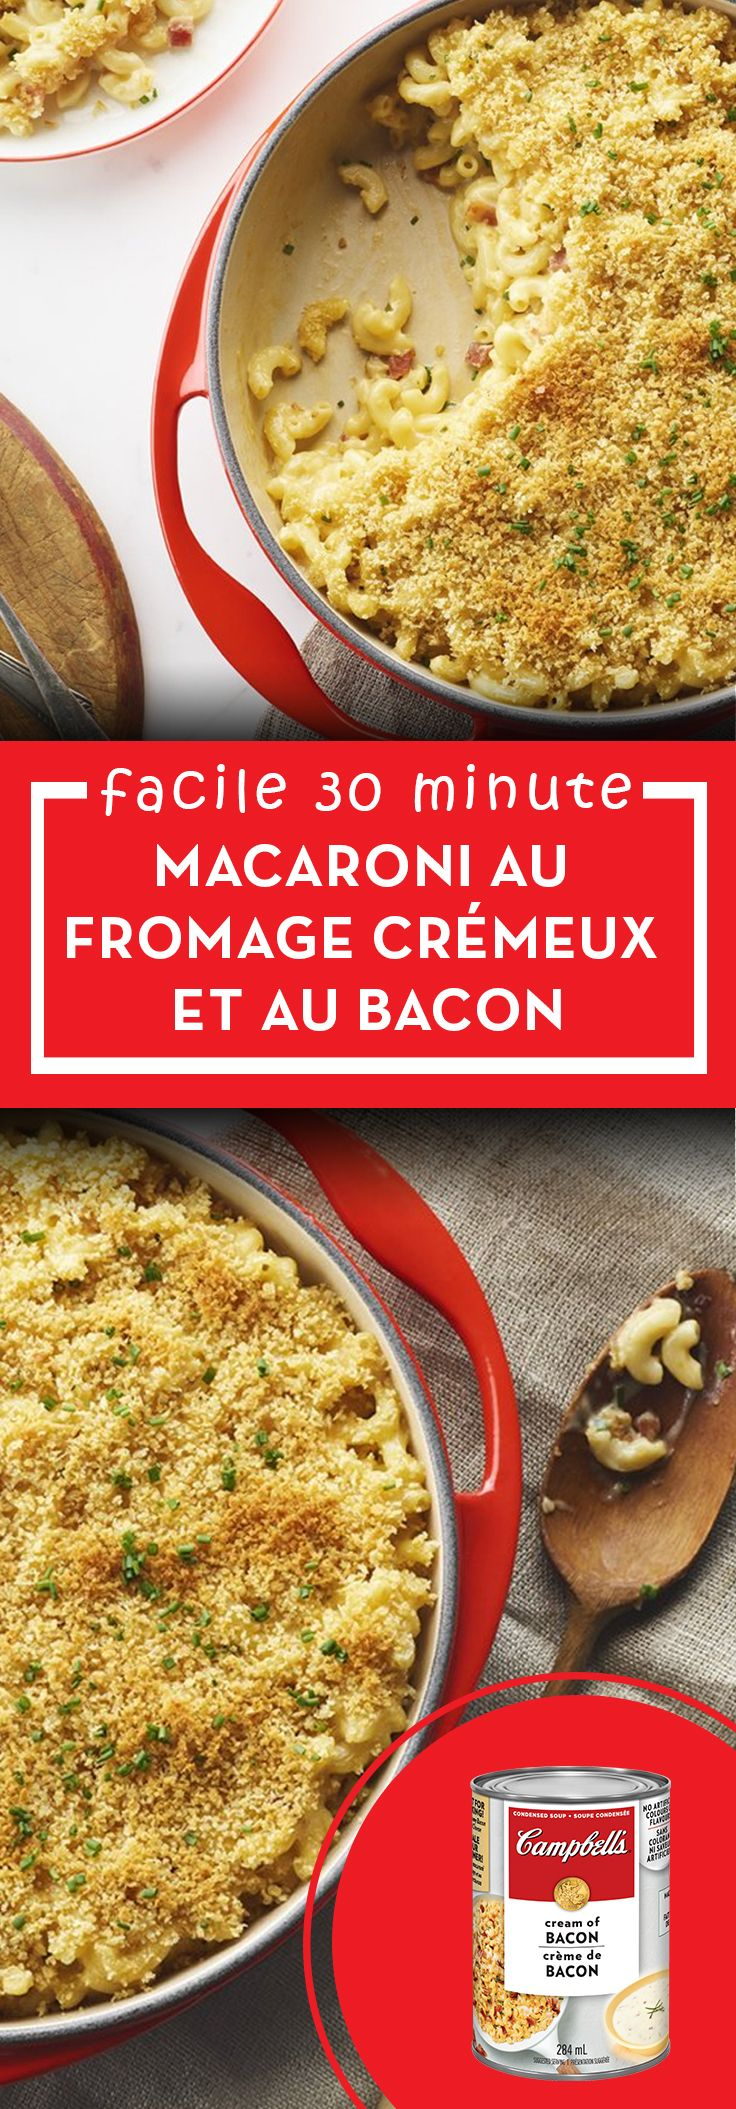 macaroni au fromage et bacon recette la cuisine. Black Bedroom Furniture Sets. Home Design Ideas